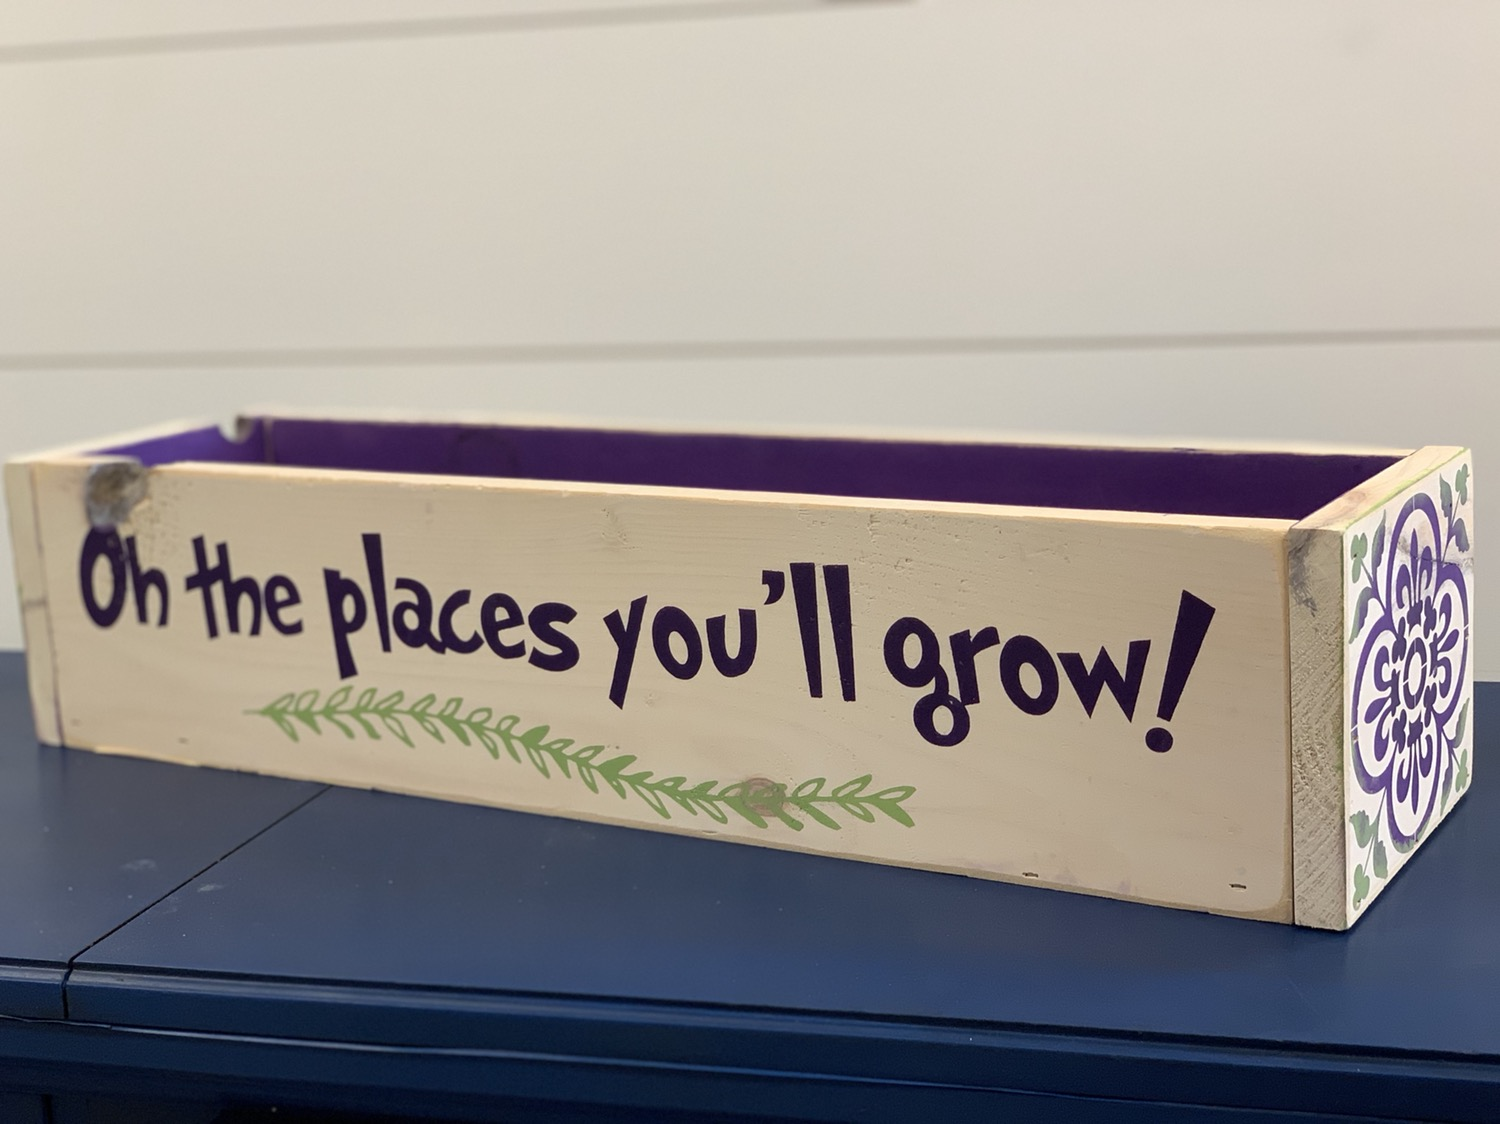 Oh the places you'll grow